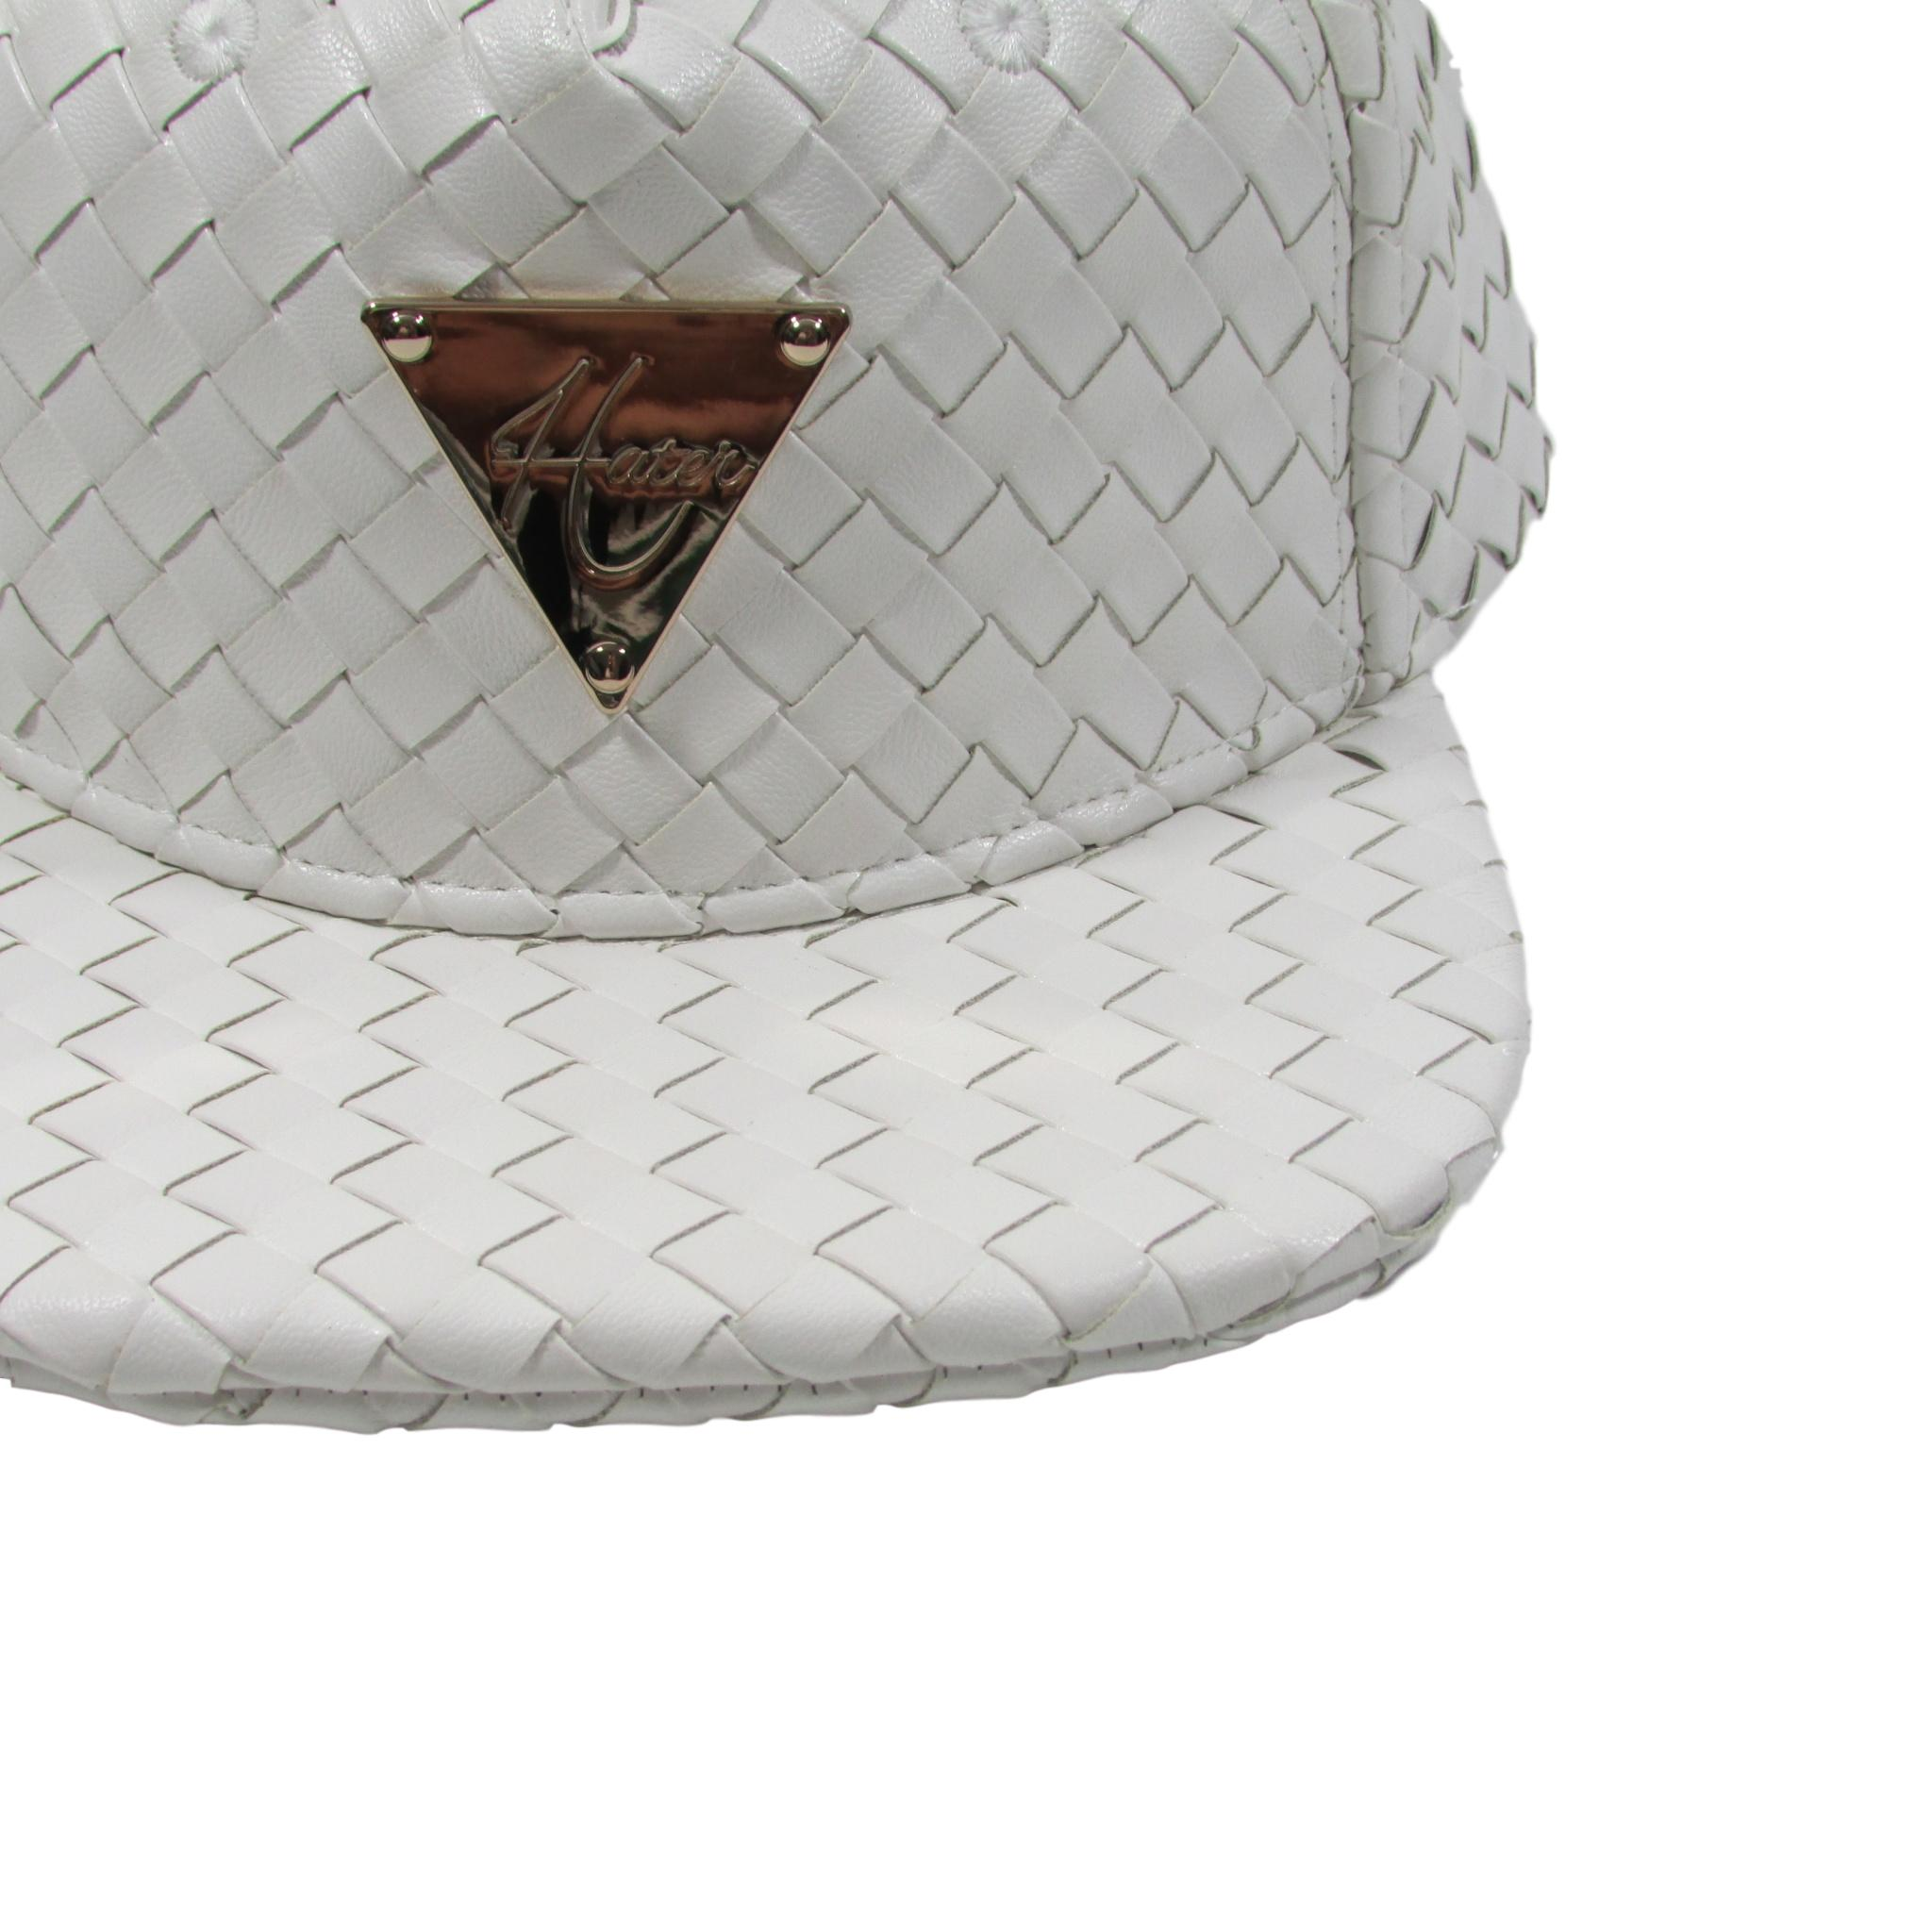 HATer Full Intrecciato Woven White Premium Leather Snapback Hat